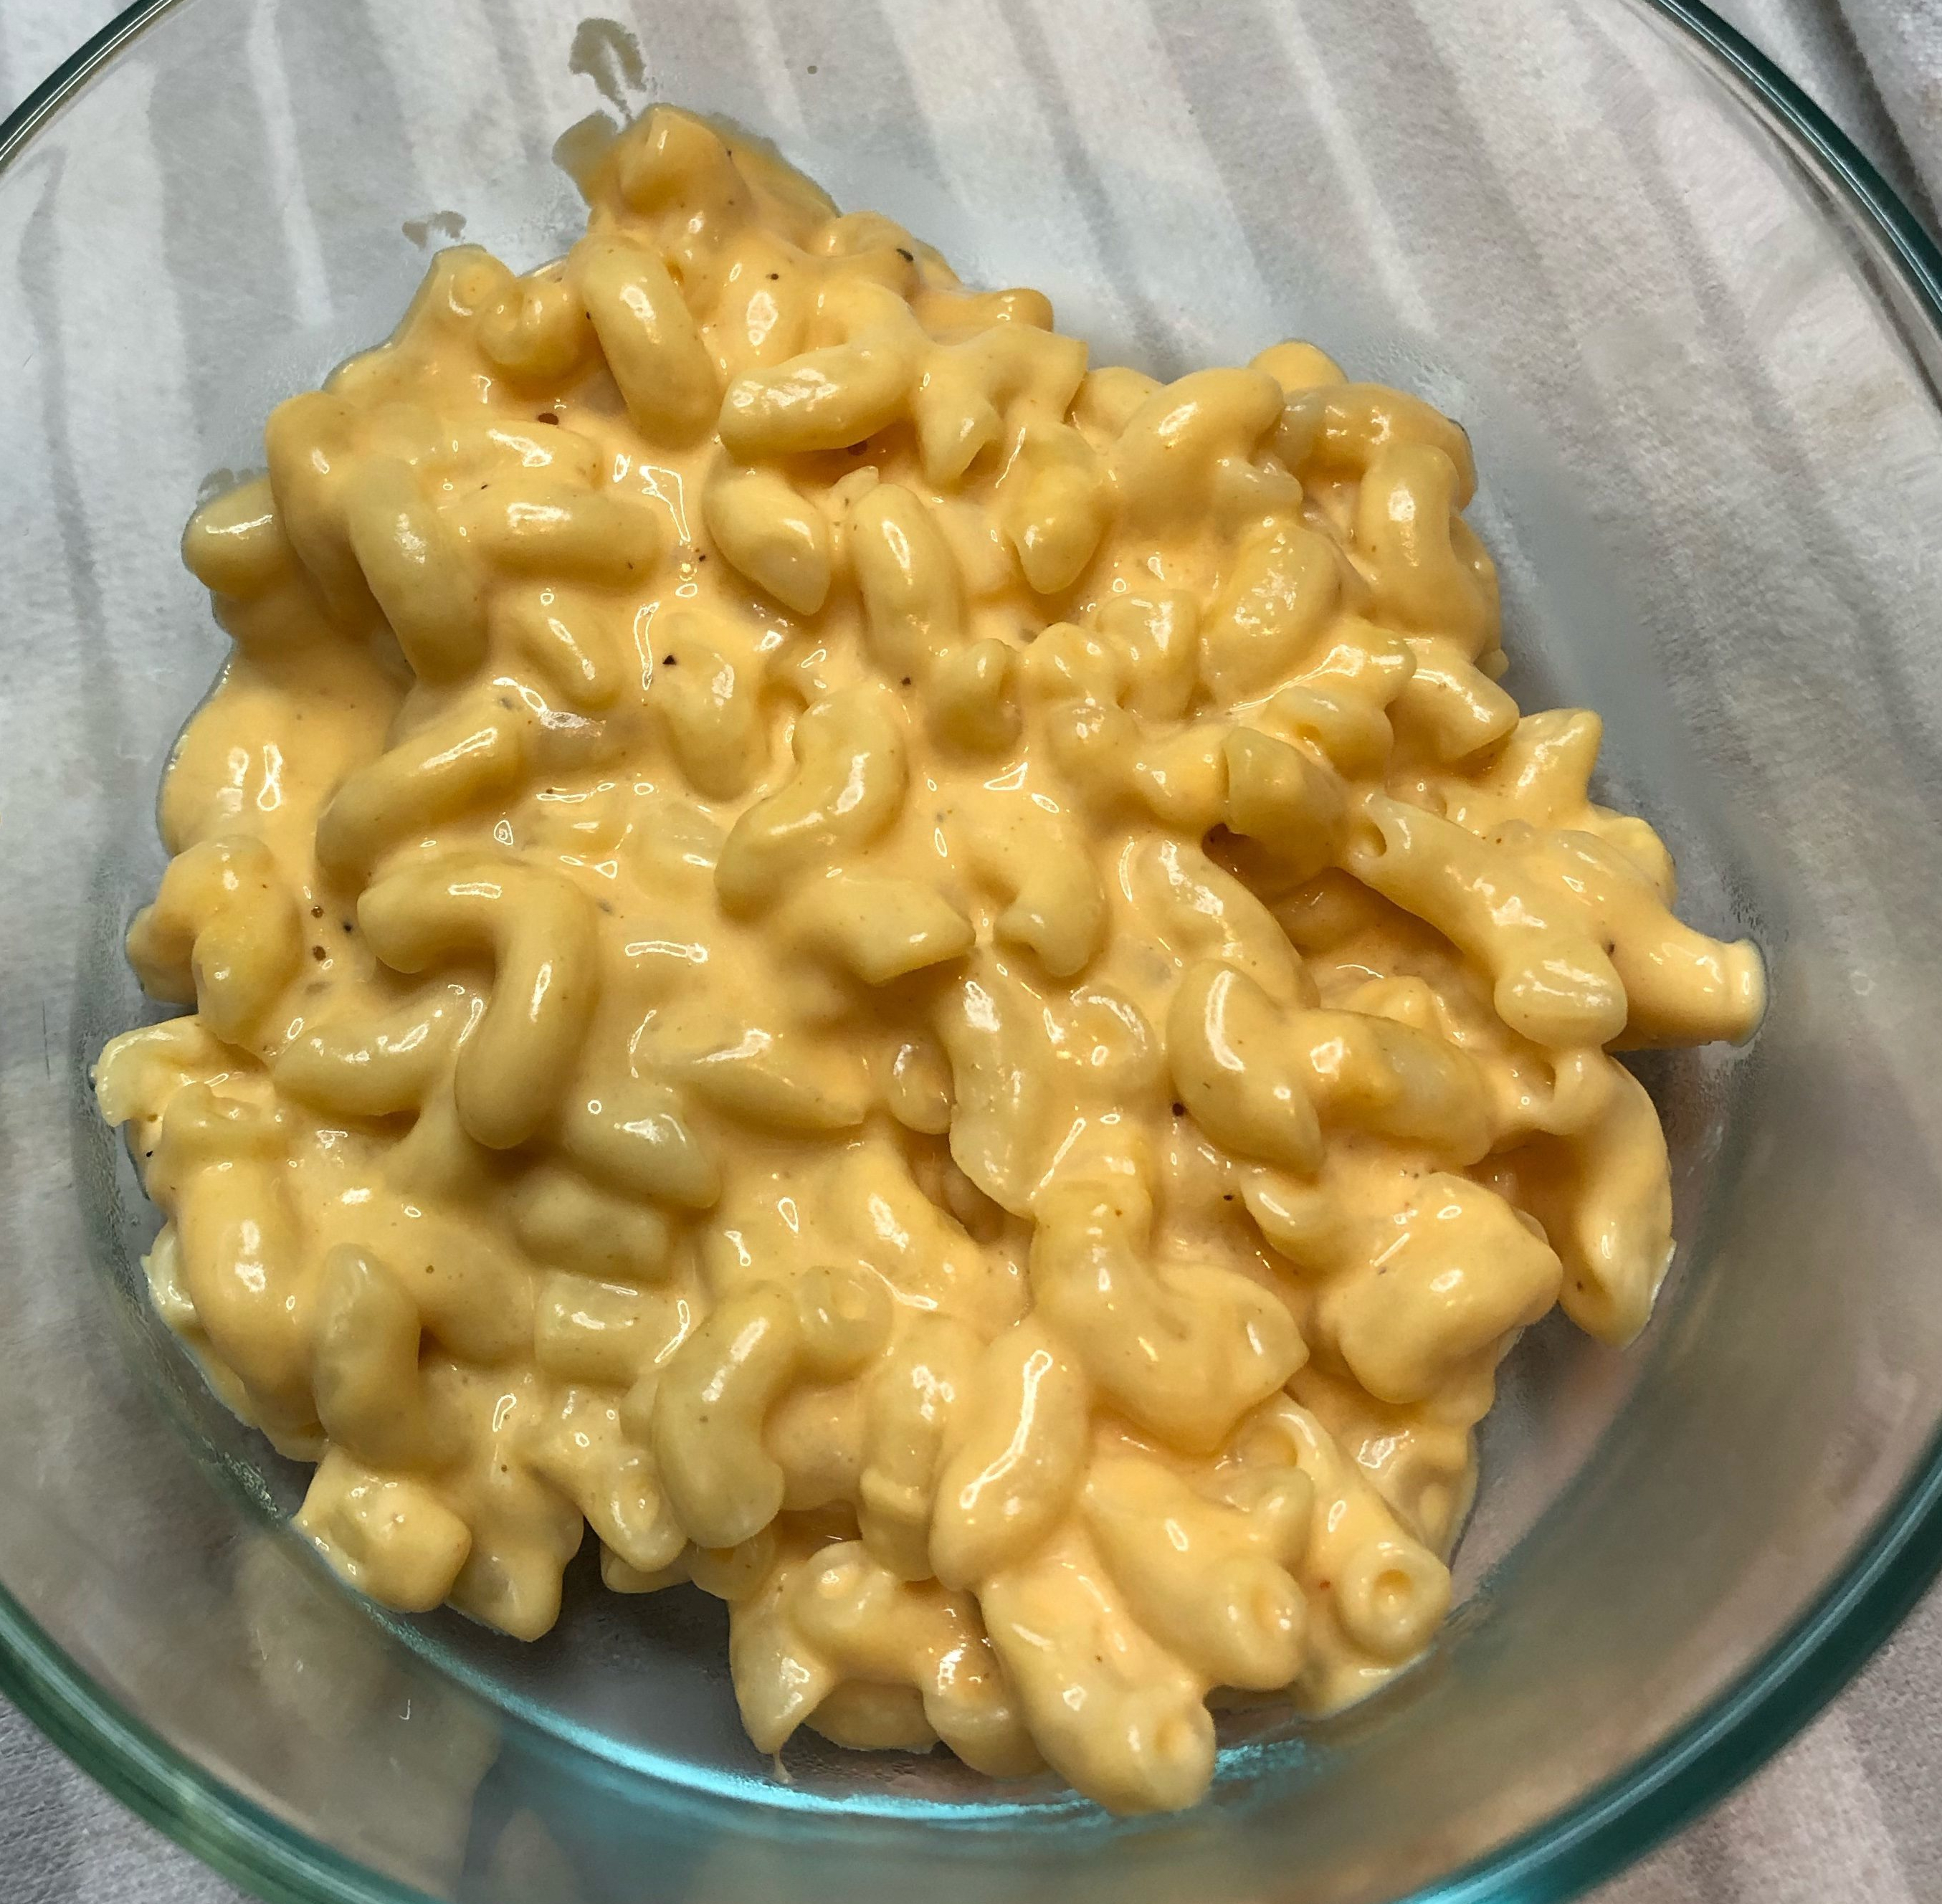 Flourless Mac and Cheese